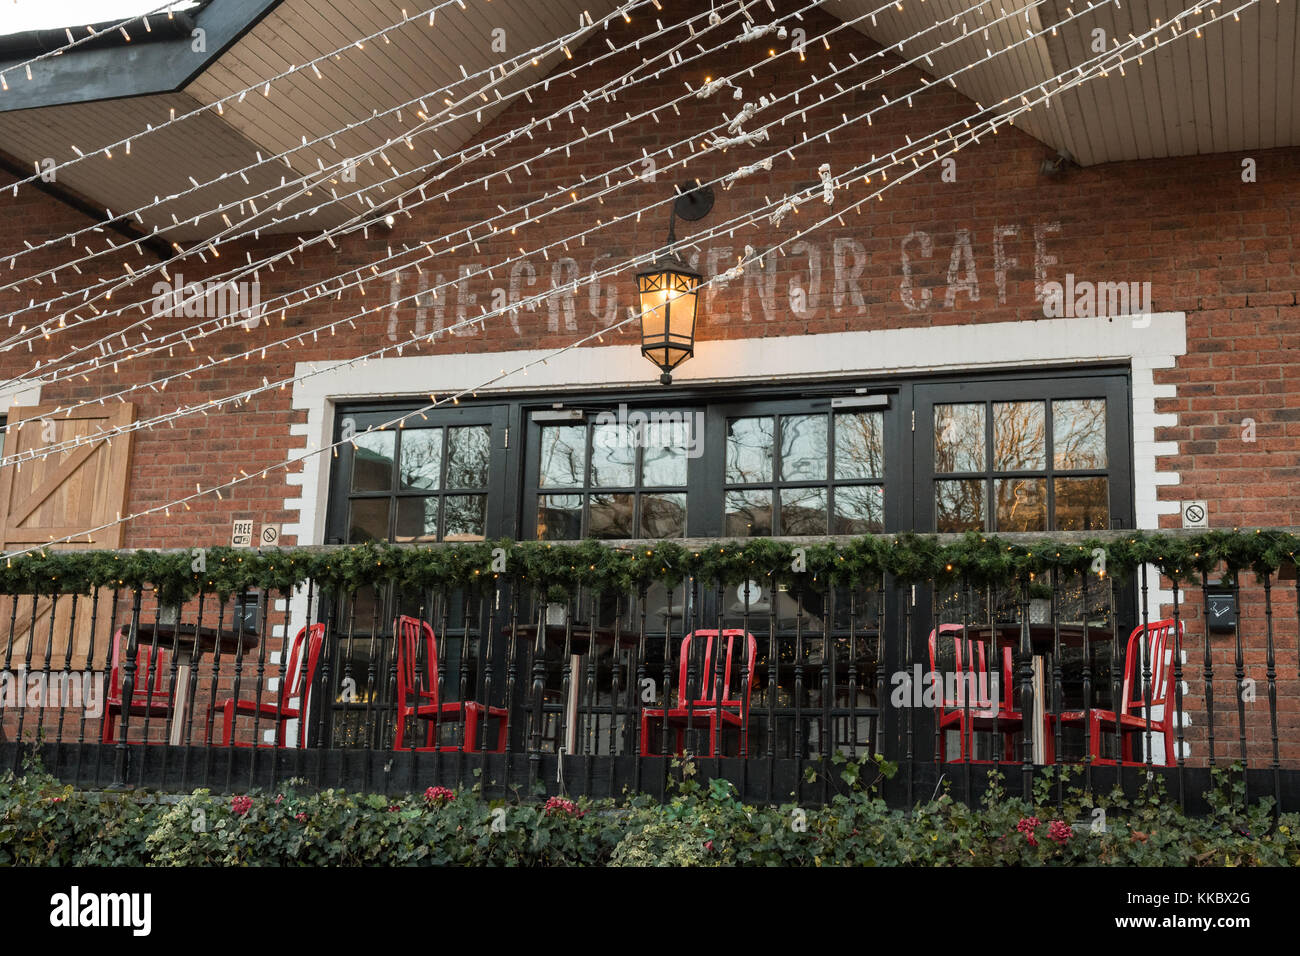 The Grosvenor Cafe, Ashton Lane, Glasgow, Scotland, UK - Stock Image